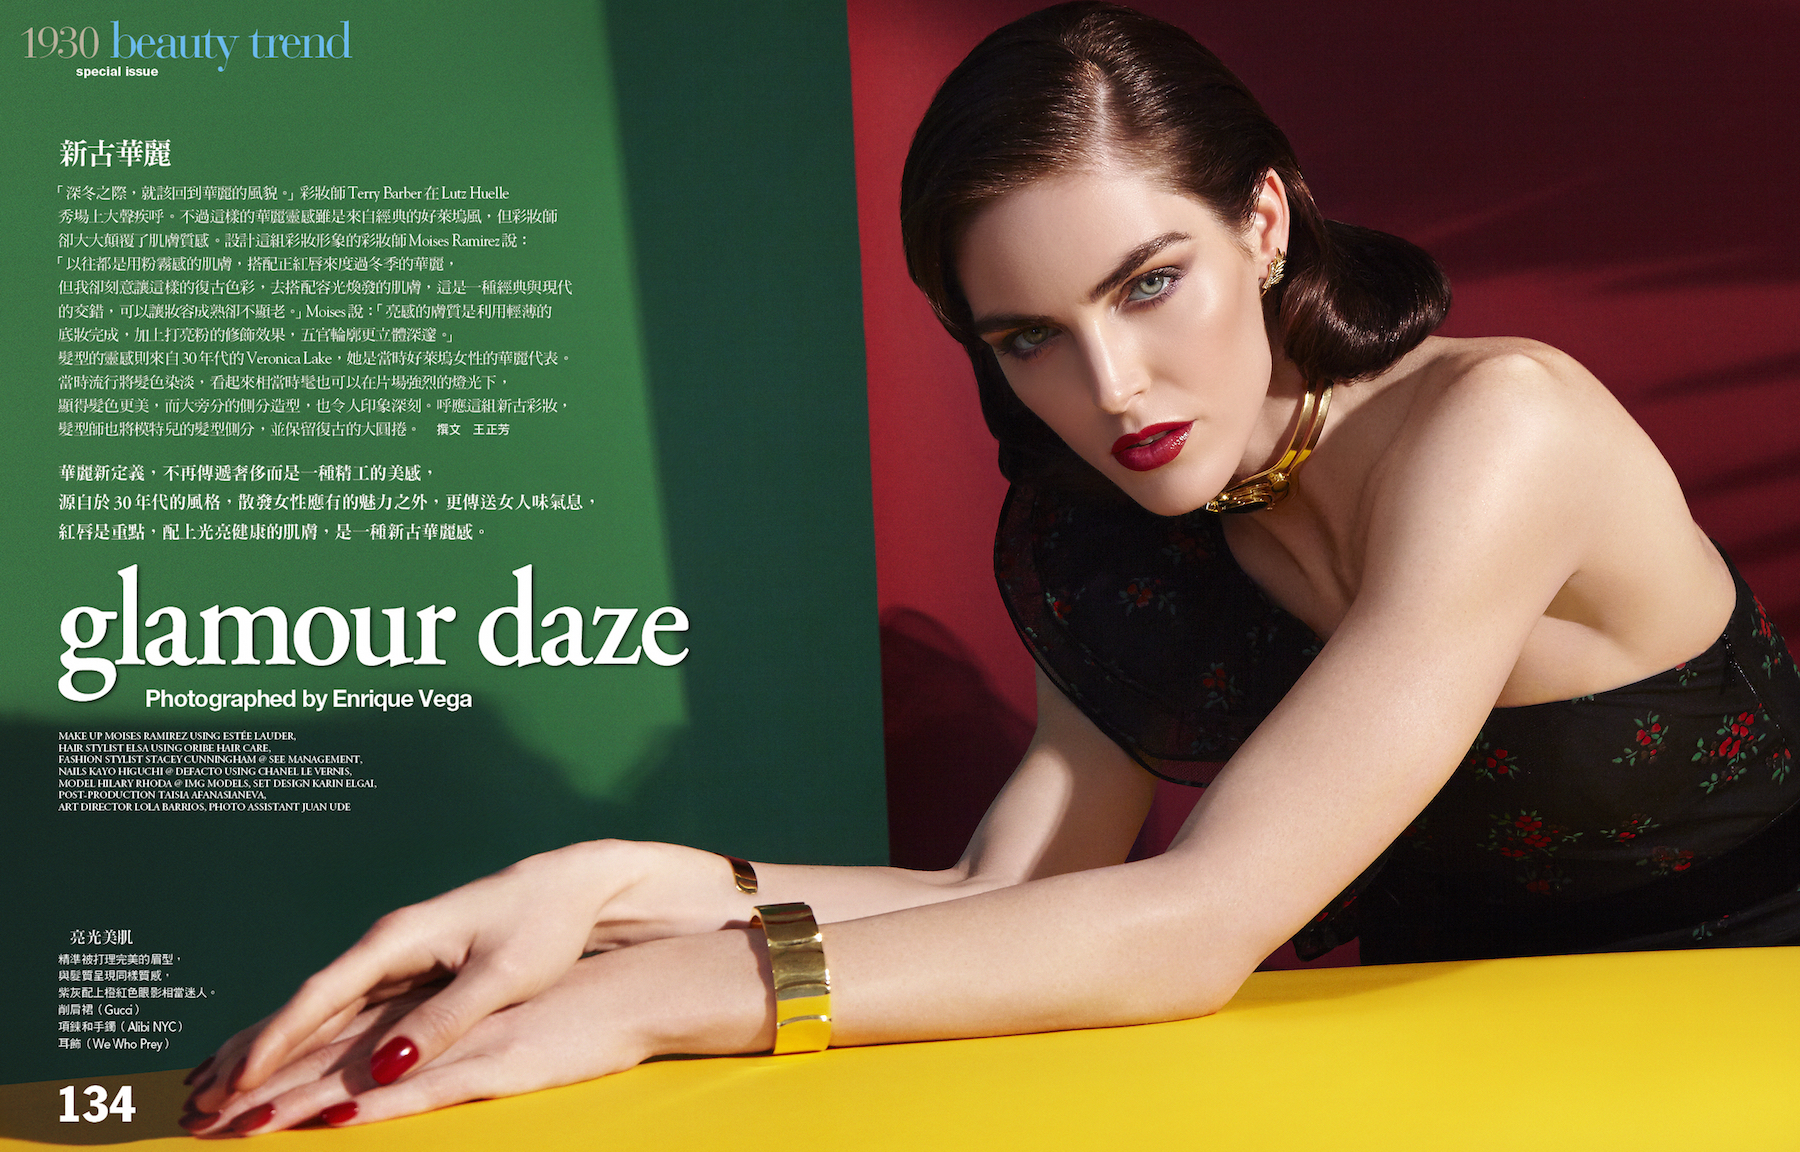 Hilary Rhoda for VOGUE Taiwan by Enrique Vega 02 copy.jpg